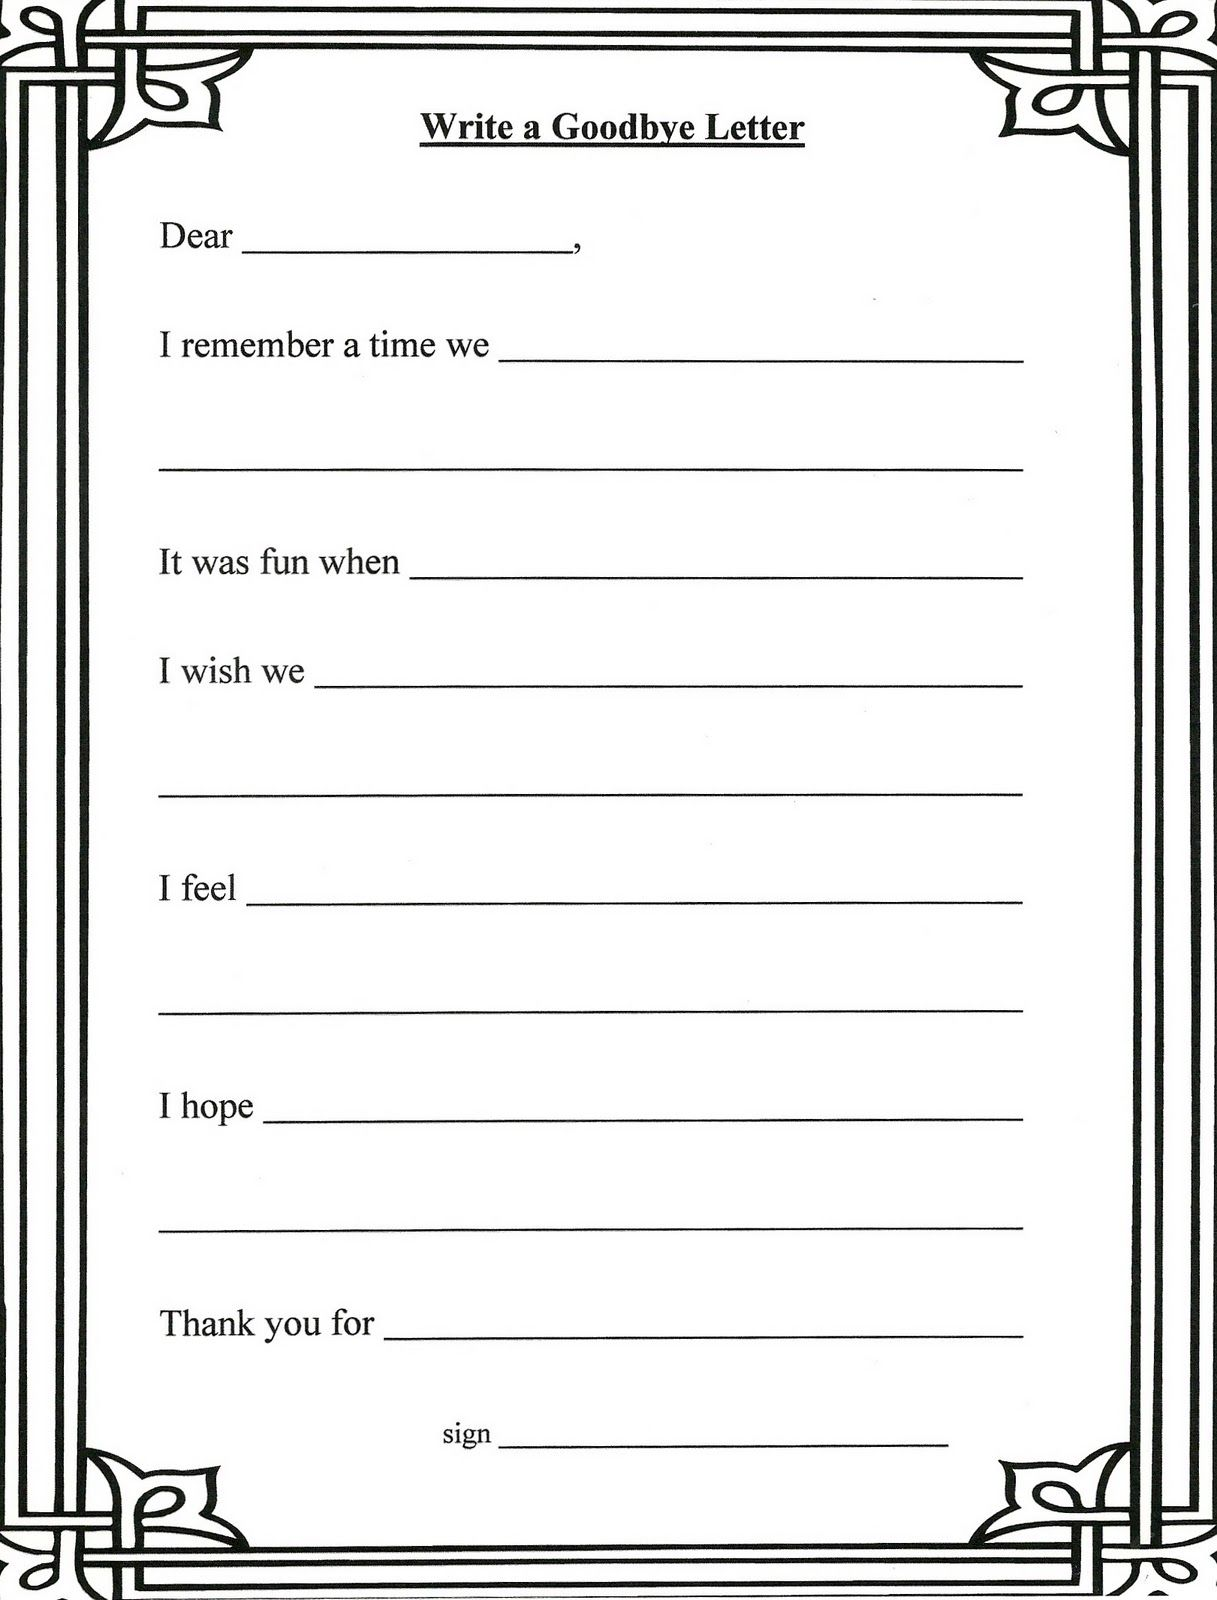 worksheet Grief Therapy Worksheets grief and loss worksheets writing a letter to the person who has passed is a